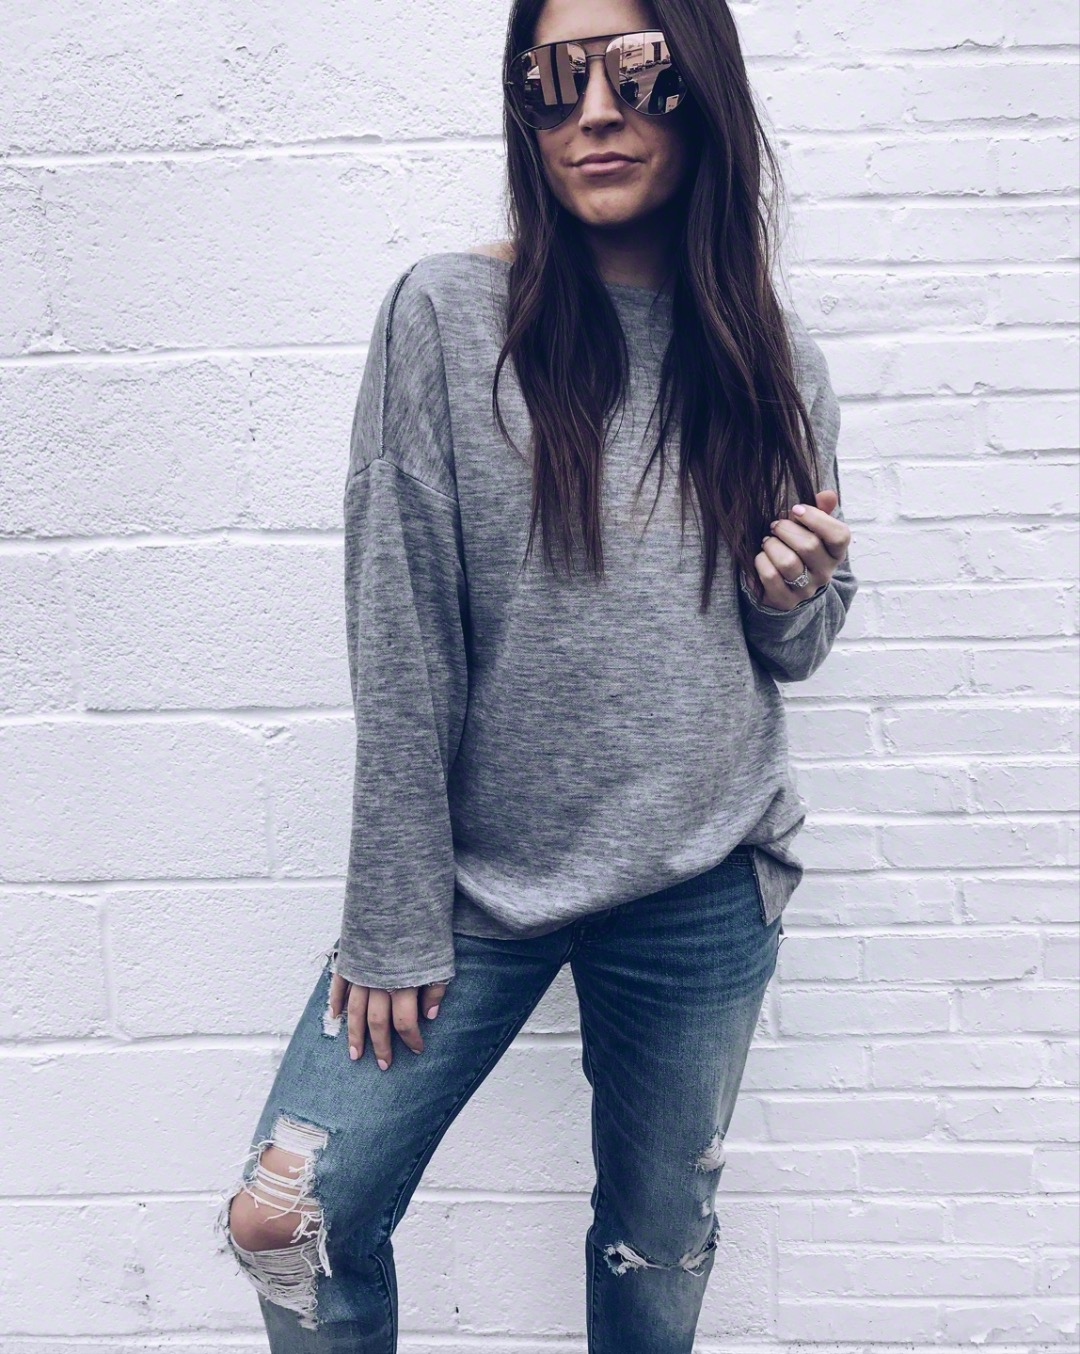 Must Have White Top for Spring | Pine Barren Beauty | spring outfit idea, spring transition outfit idea, grey pullover, distressed denim